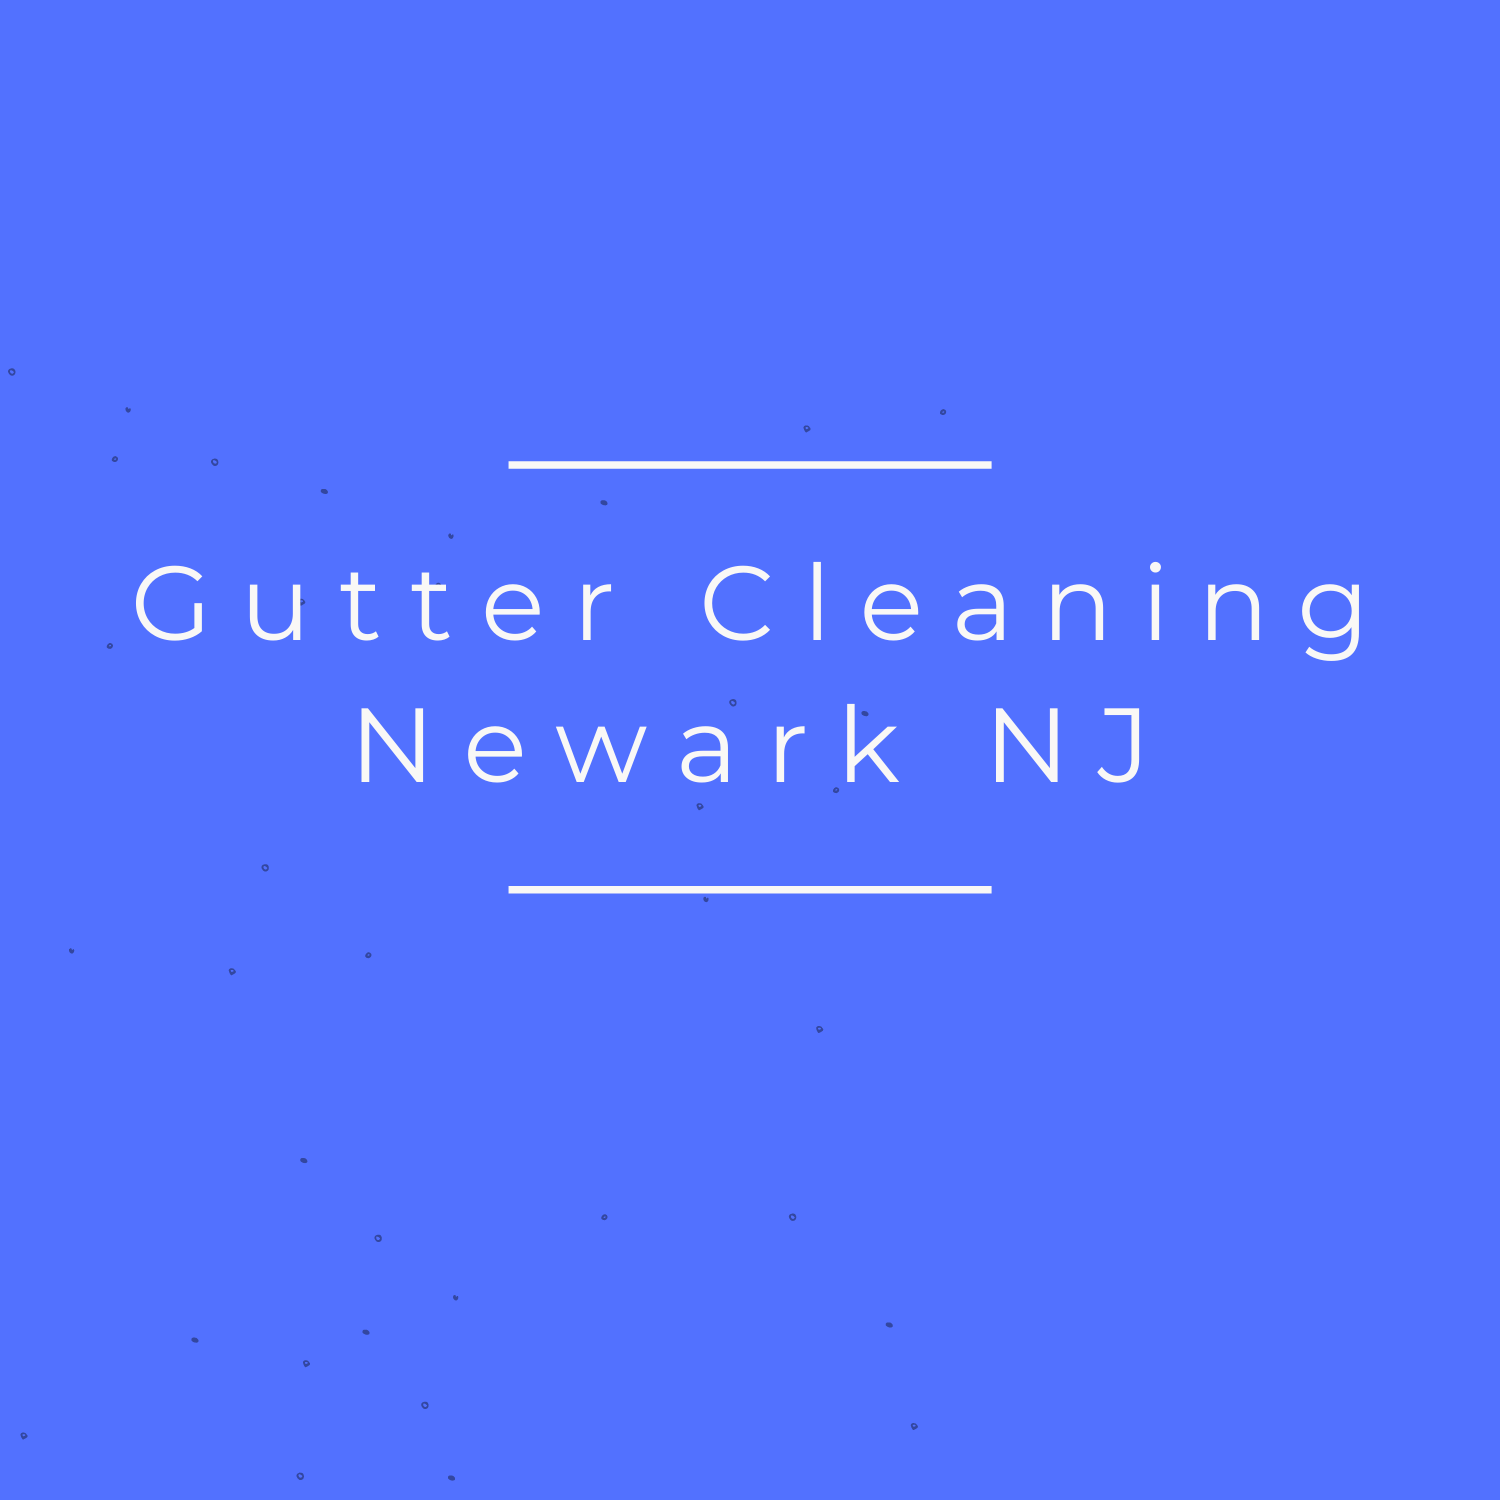 Gutter Cleaning Newark NJ